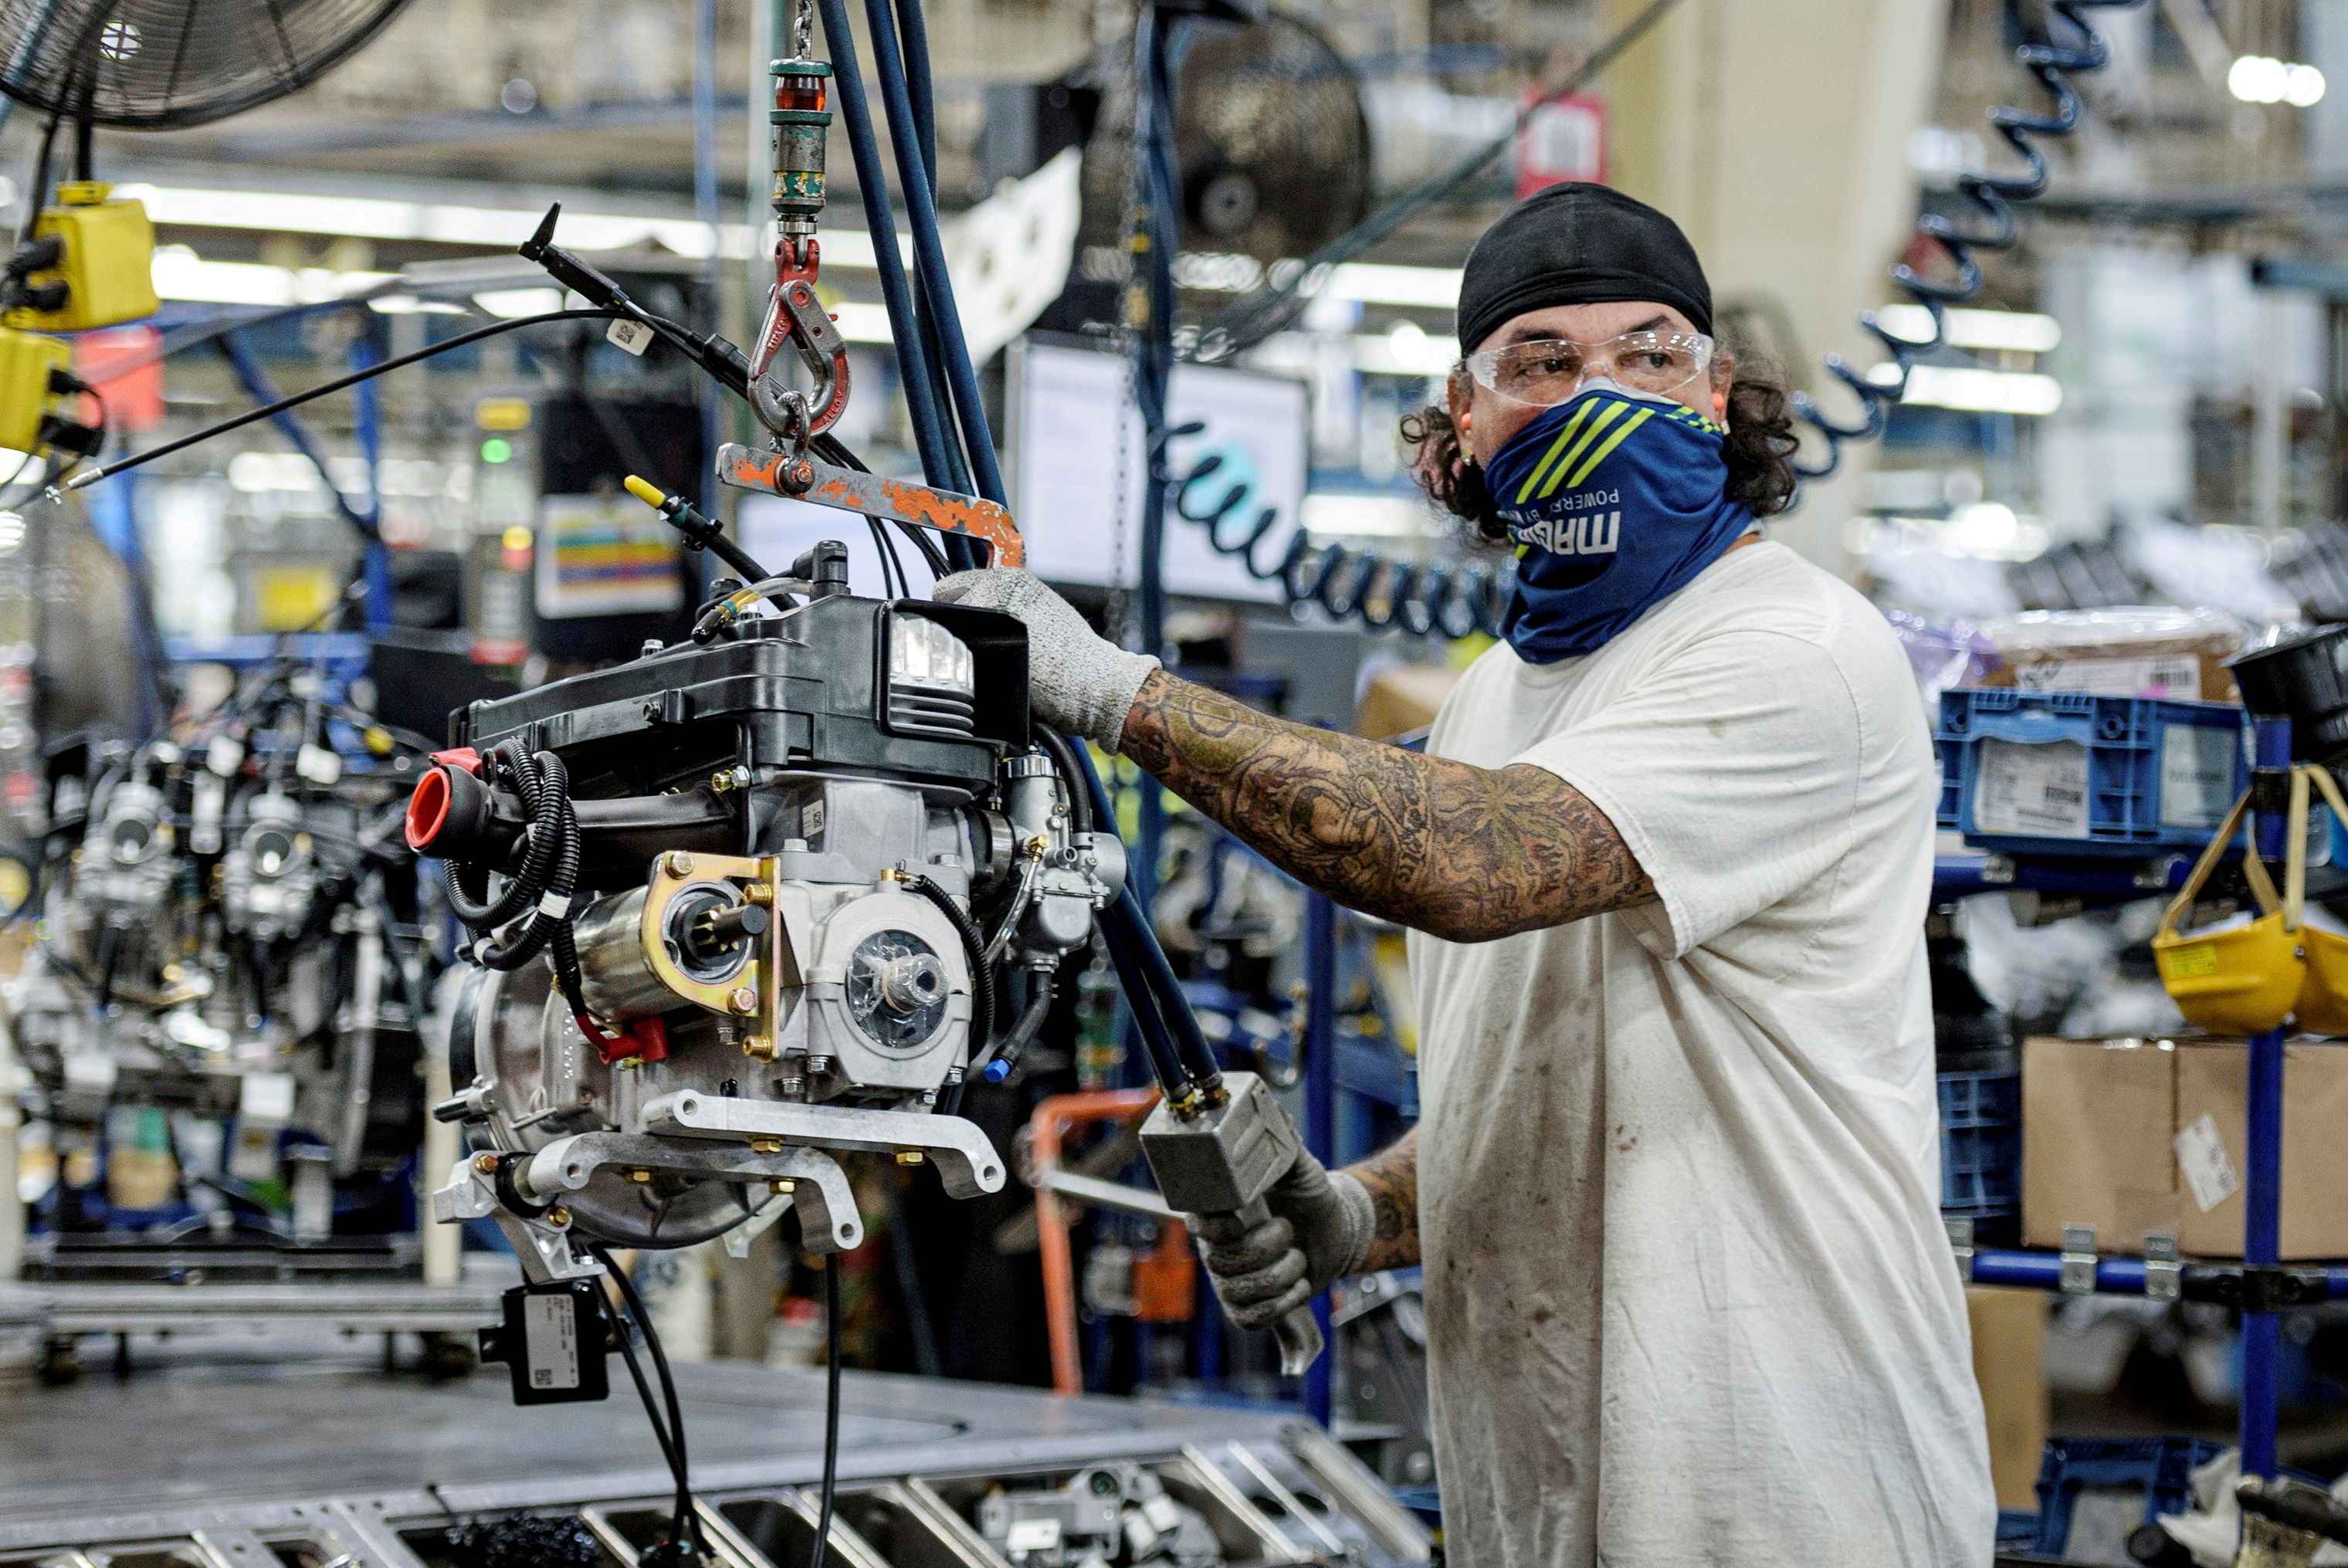 A person works on a Polaris snowmobile assembly line at their manufacturing and assembly plant in Roseau, Minnesota, U.S. June 7, 2021. REUTERS/Dan Koeck/File Photo/File Photo